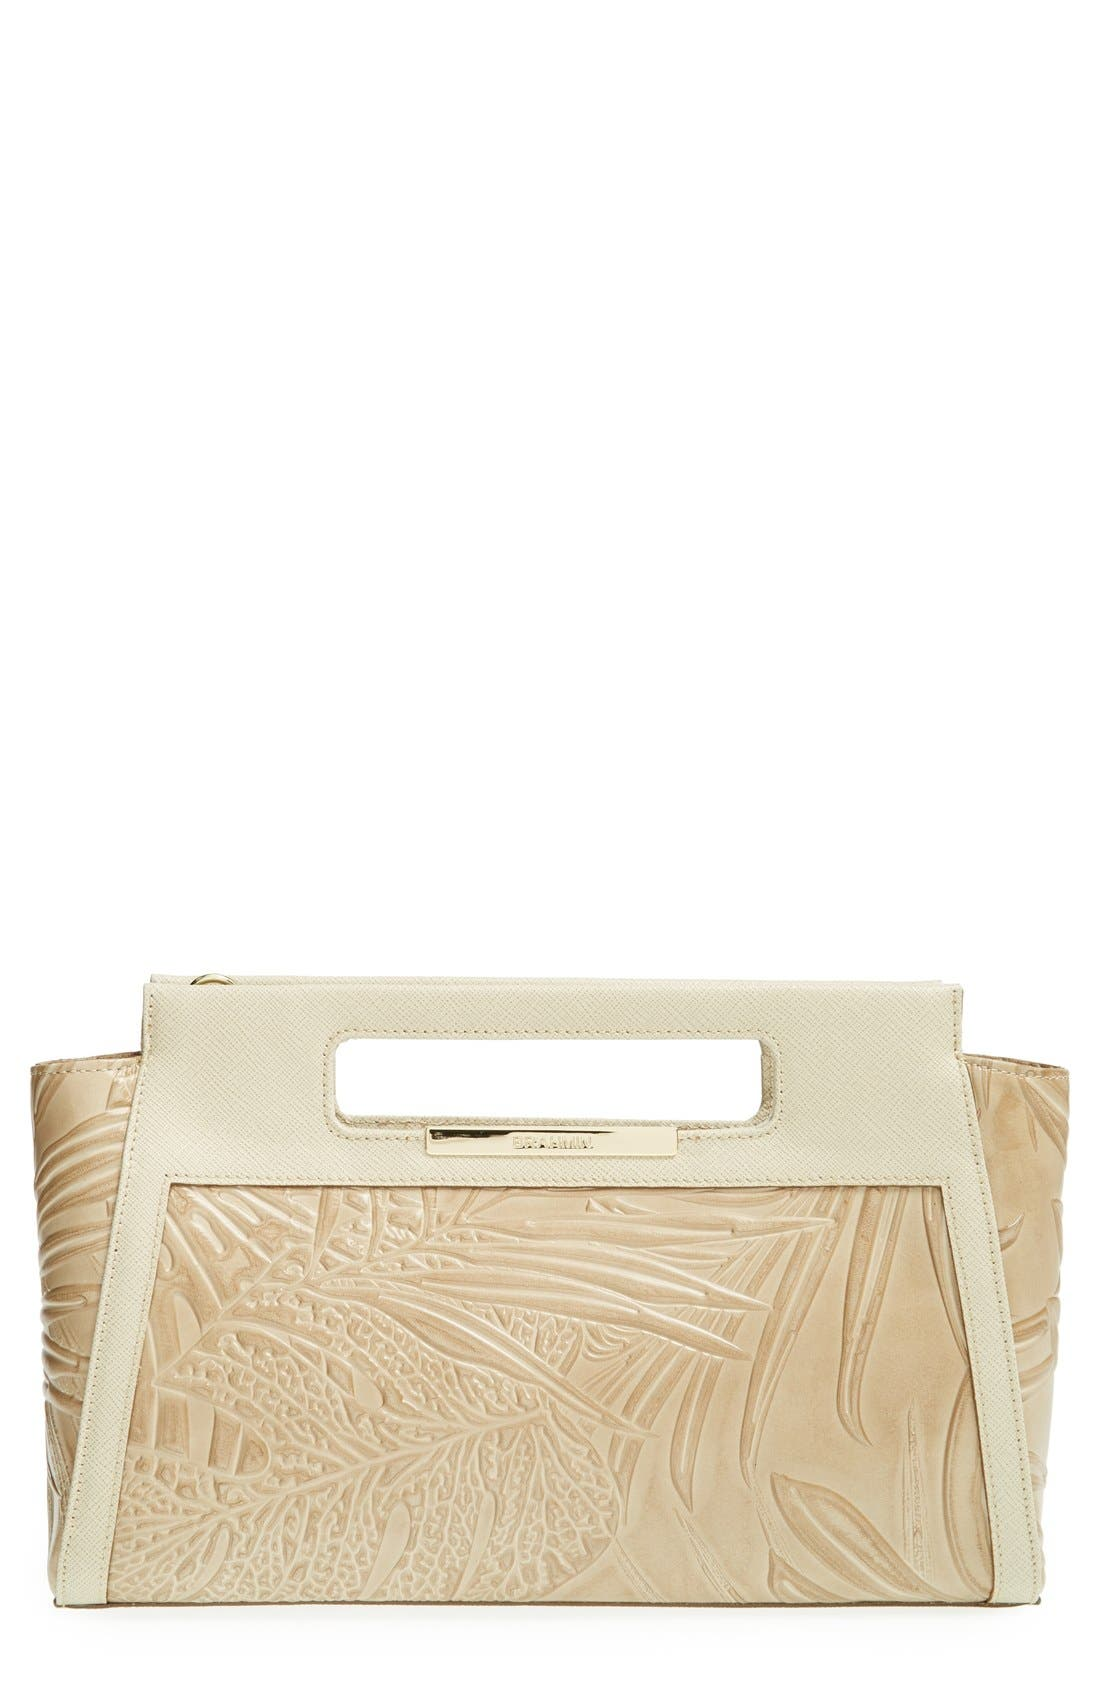 Alternate Image 1 Selected - Brahmin 'Lenox' Embossed Leather Clutch